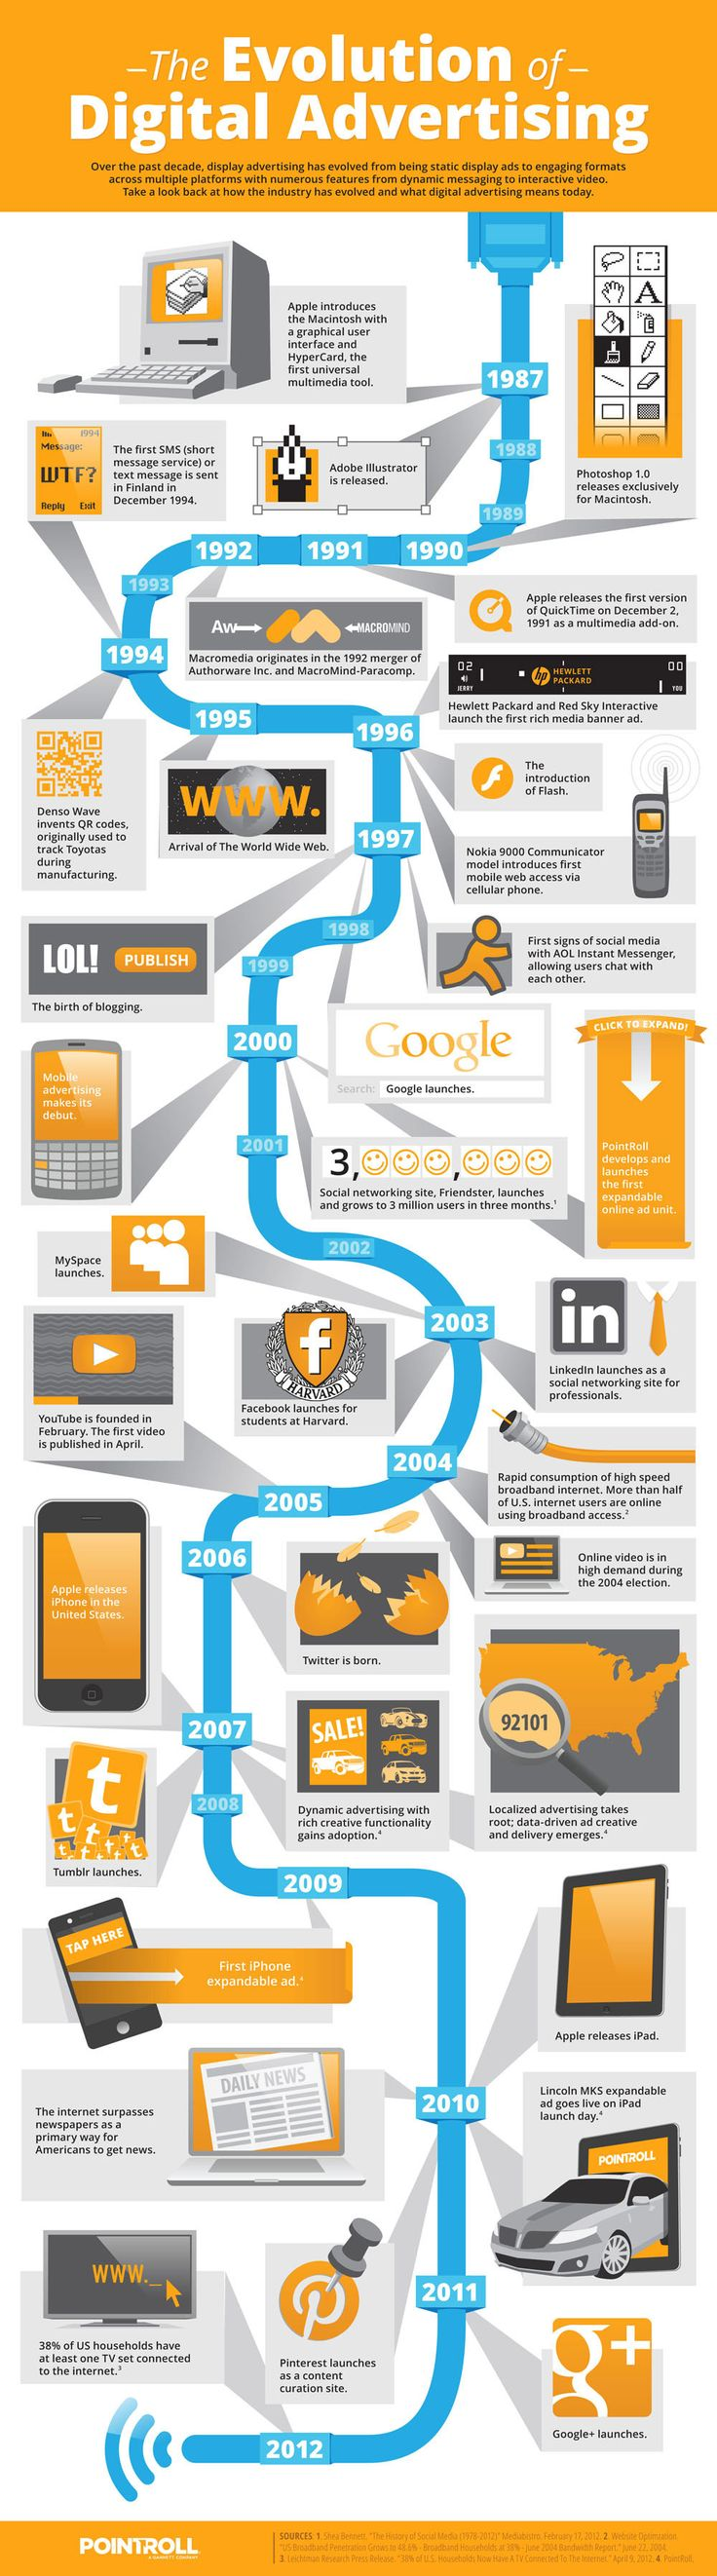 Online Advertising: The birth of social media and gadgets like the iPhone and the iPad created new opportunities for multimedia, location-based ads that span across platforms, making online advertising as rich a field as it's ever been. This infographic shows the evolution of digital/online advertising.  Dig deeper into the J+B digital marketing realm here http://www.jbnorthamerica.com/media/online-advertising-marketing-company